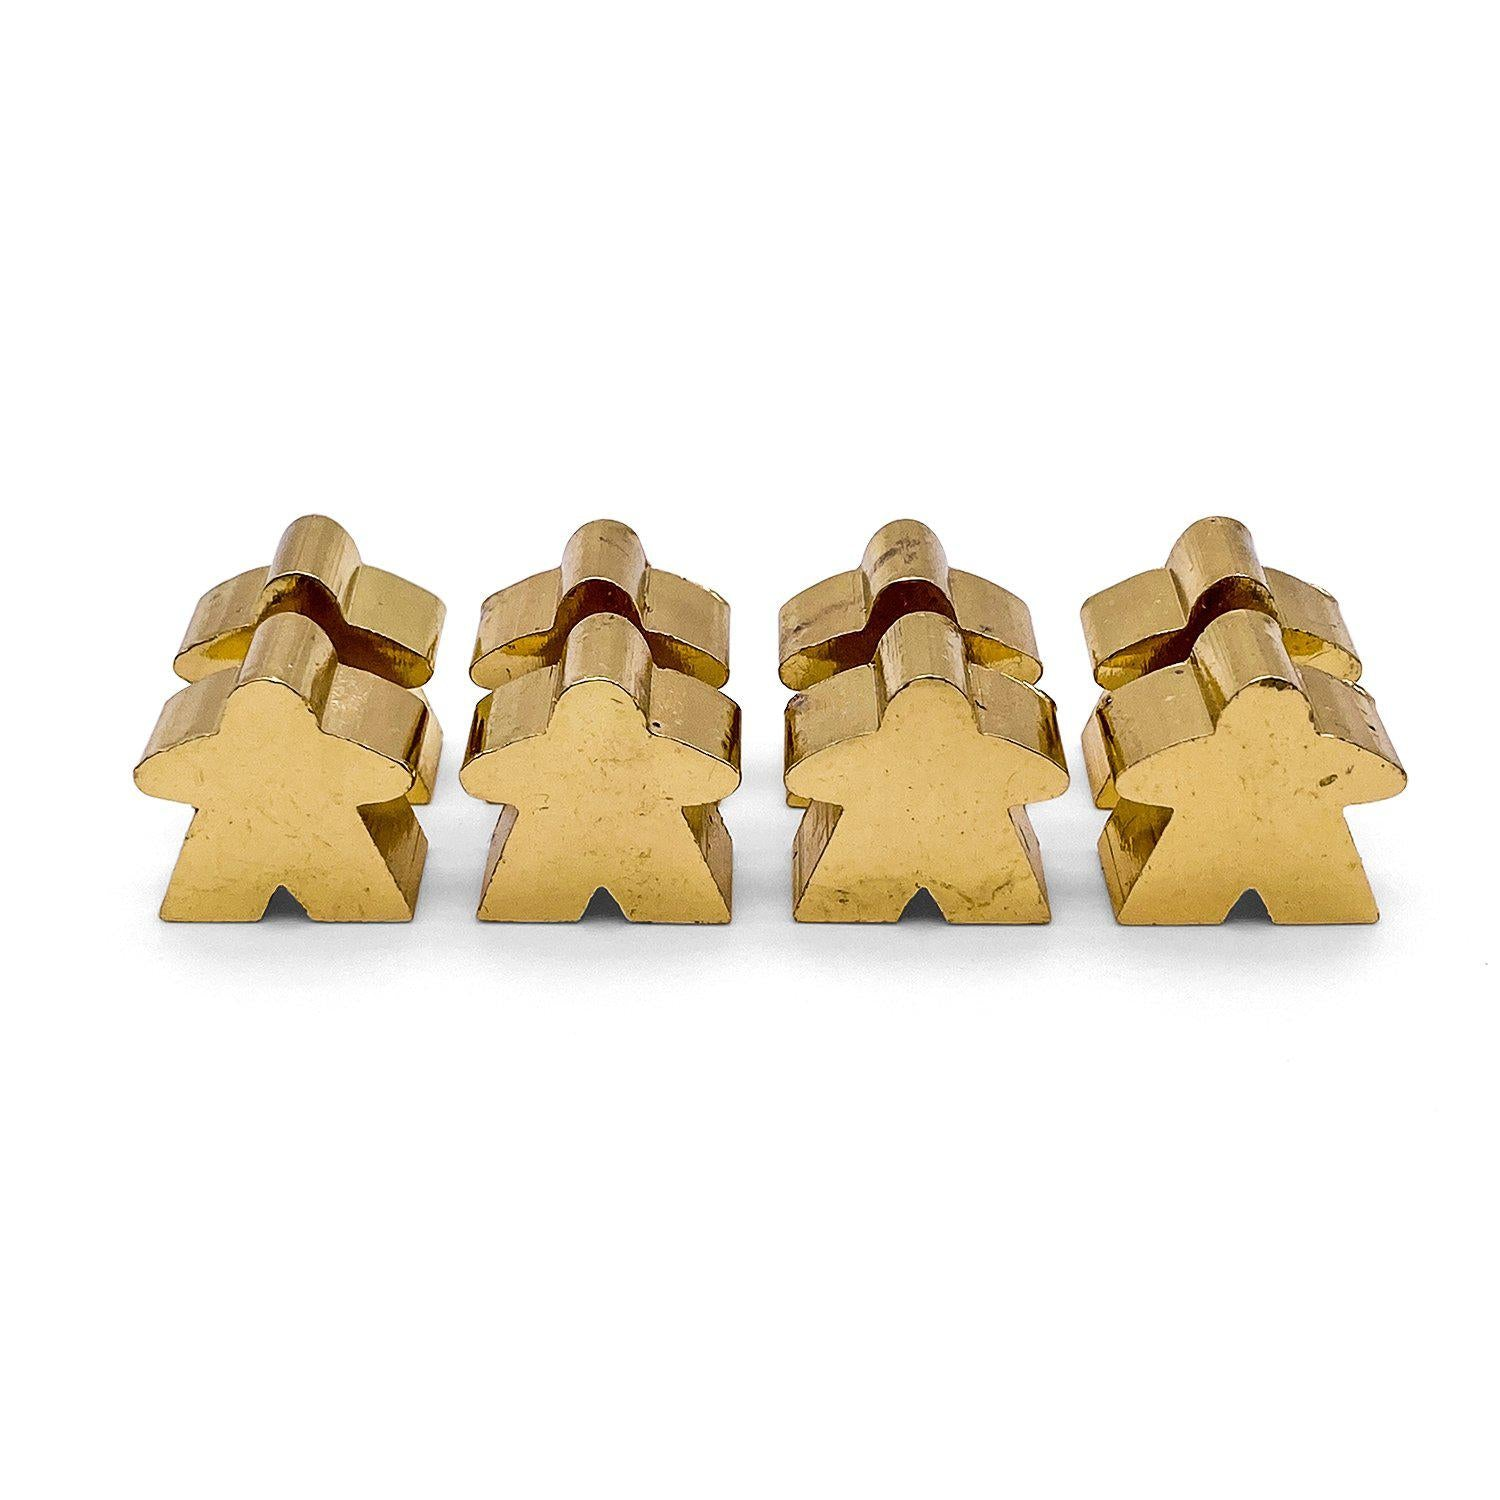 8 Pack of Shiney Gold Metal Meeples by Norse Foundry